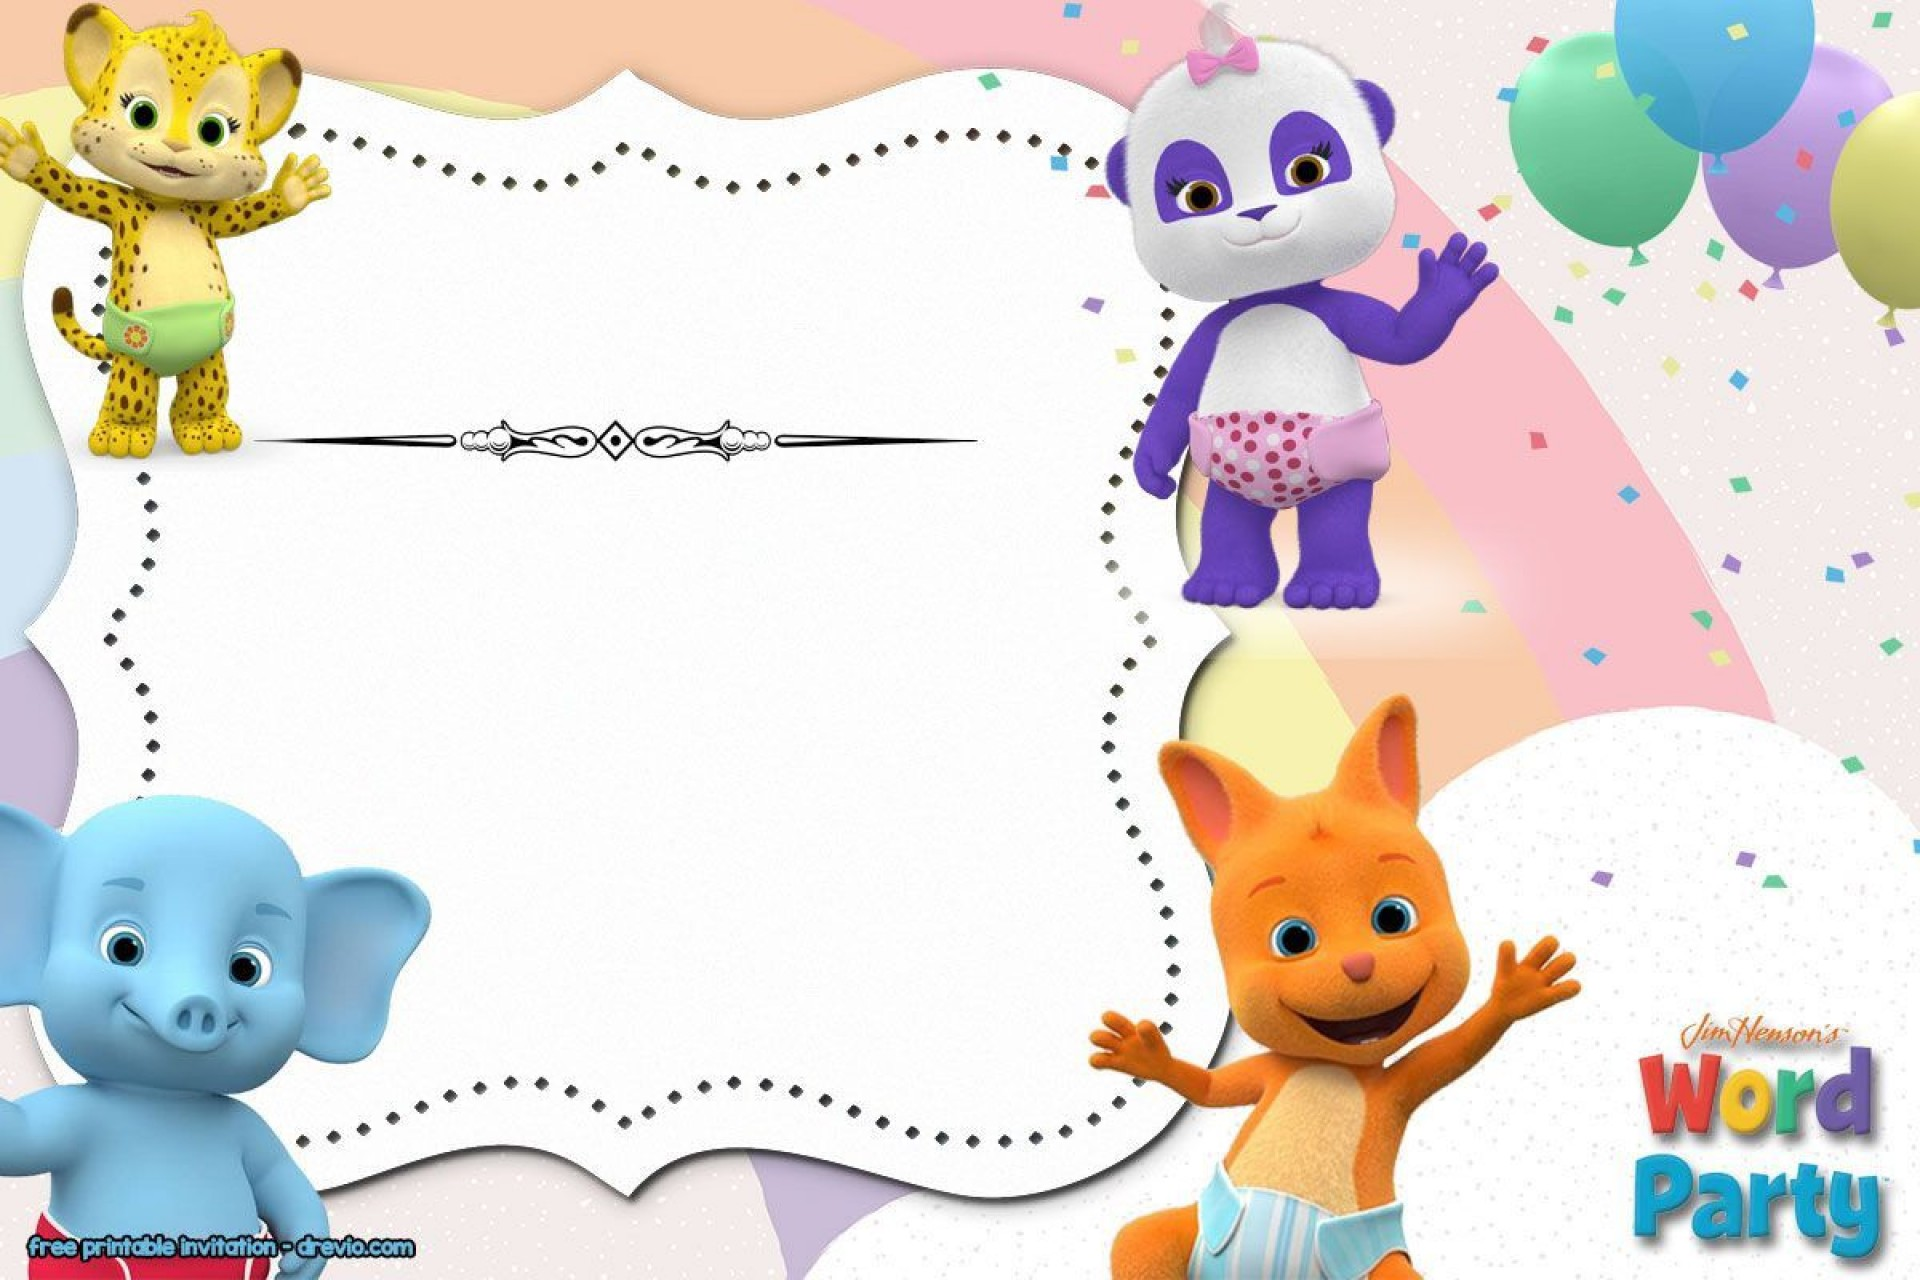 002 Impressive Free Birthday Party Invitation Template For Word Sample 1920